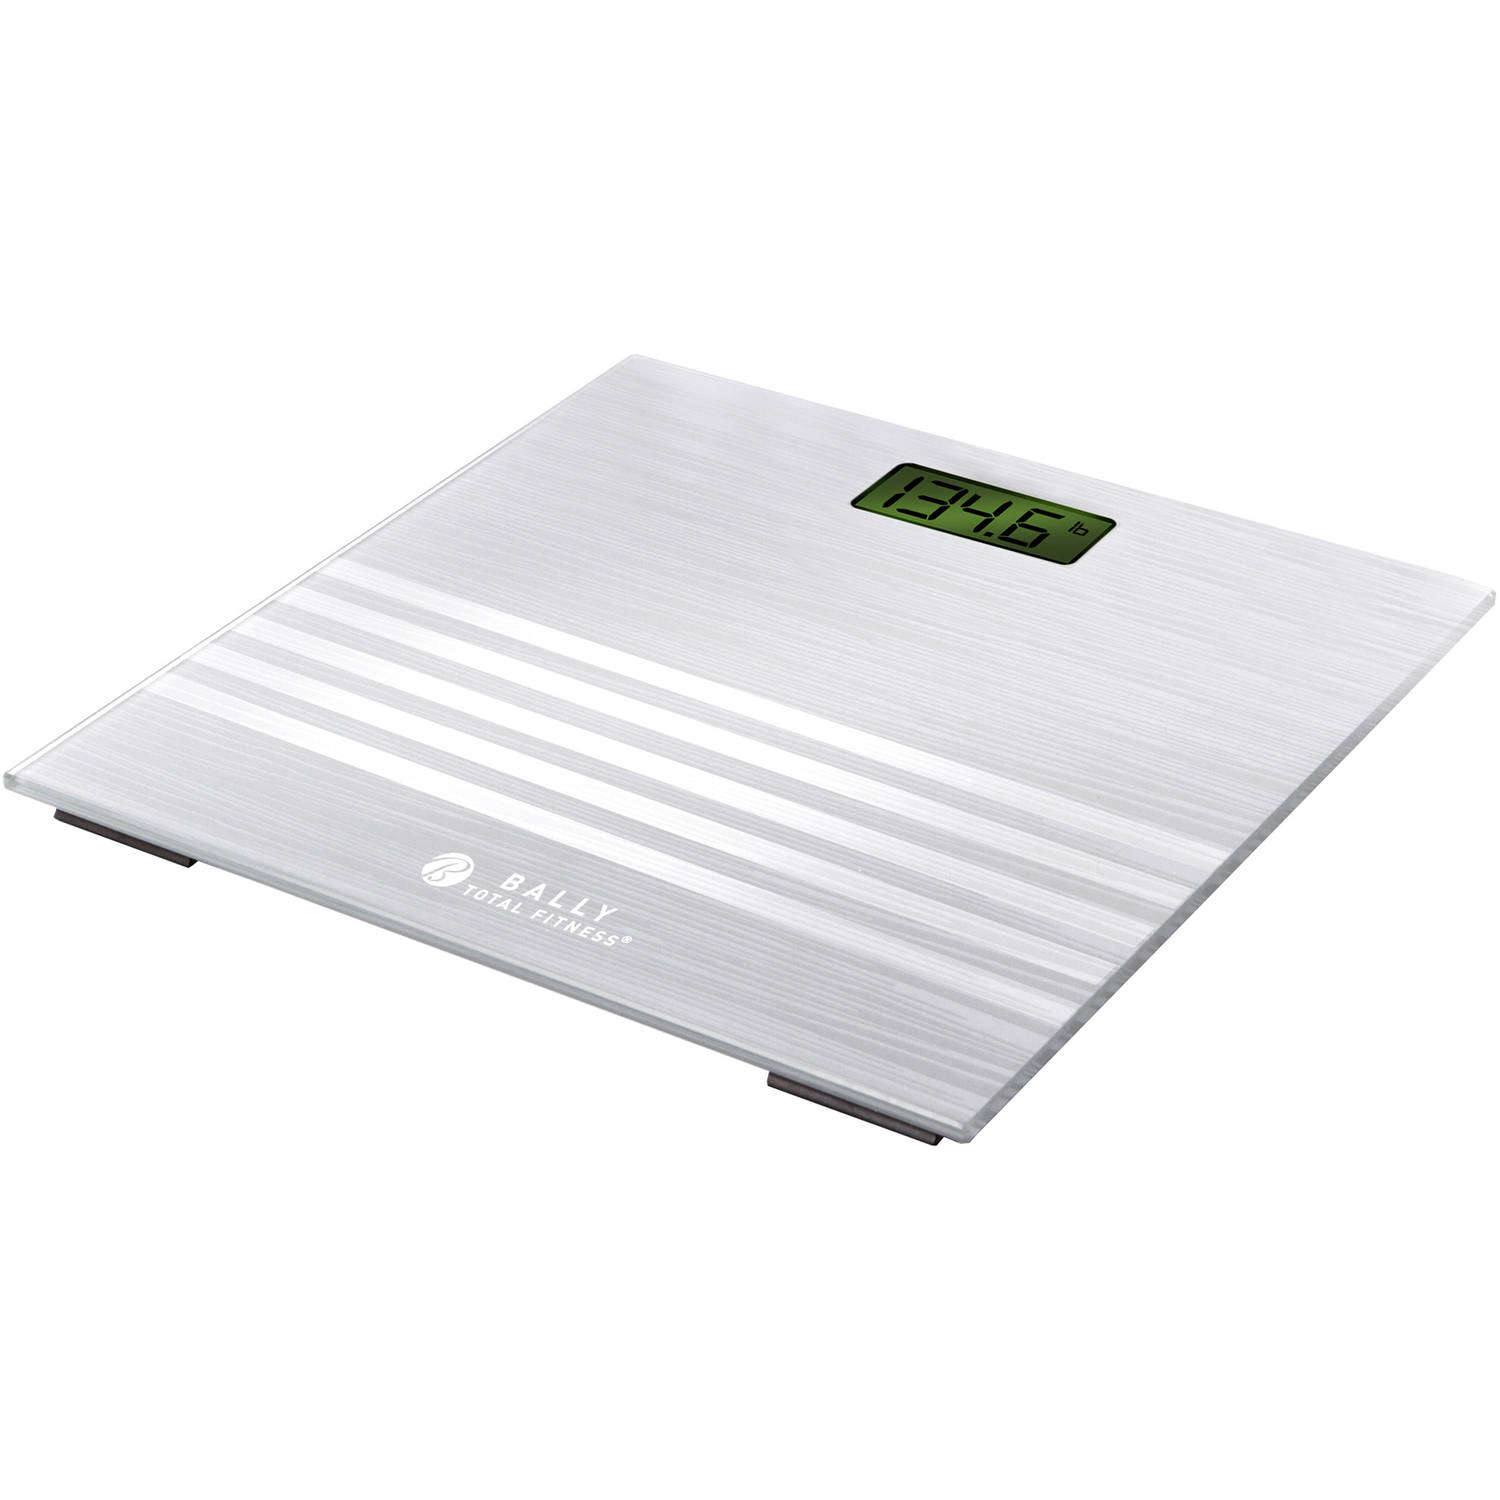 Buy Digital Bathroom Scales